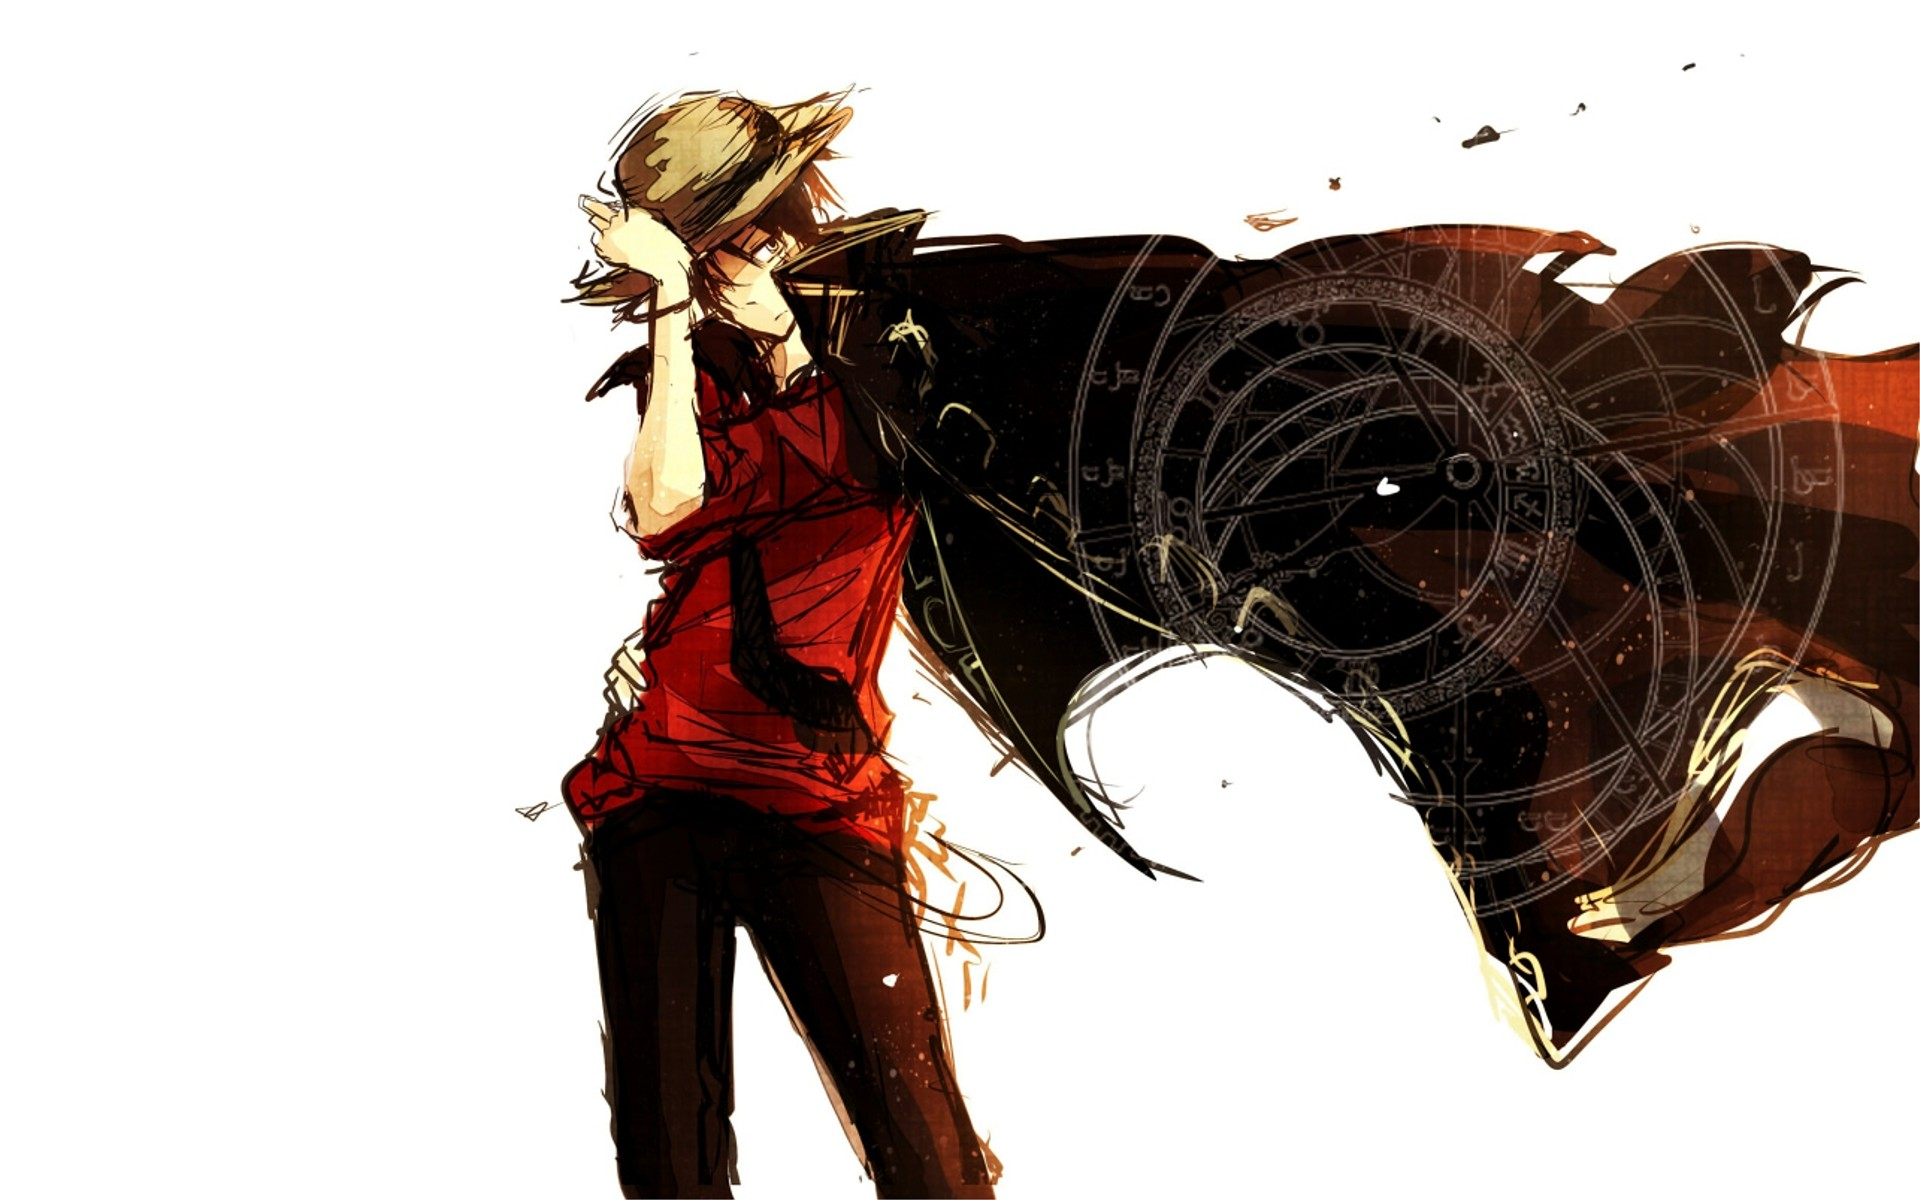 1313 <b>One Piece</b> HD Wallpapers | <b>Backgrounds</b> - Wallpaper Abyss - Page 3